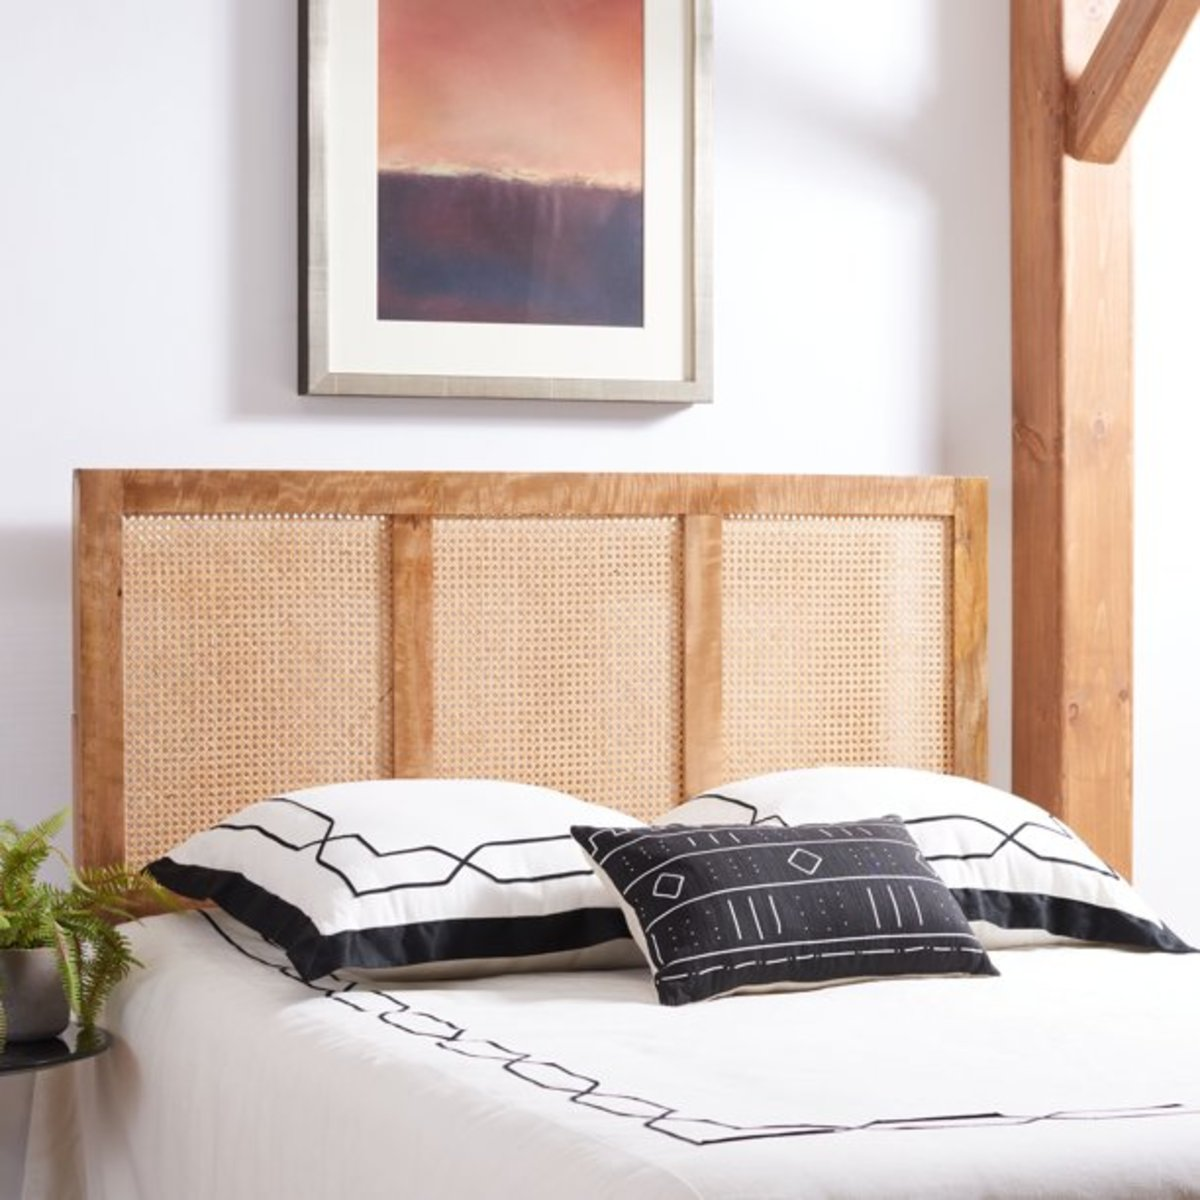 The lightweight cane with the wood frame is the headboard for the gorgeous bed.